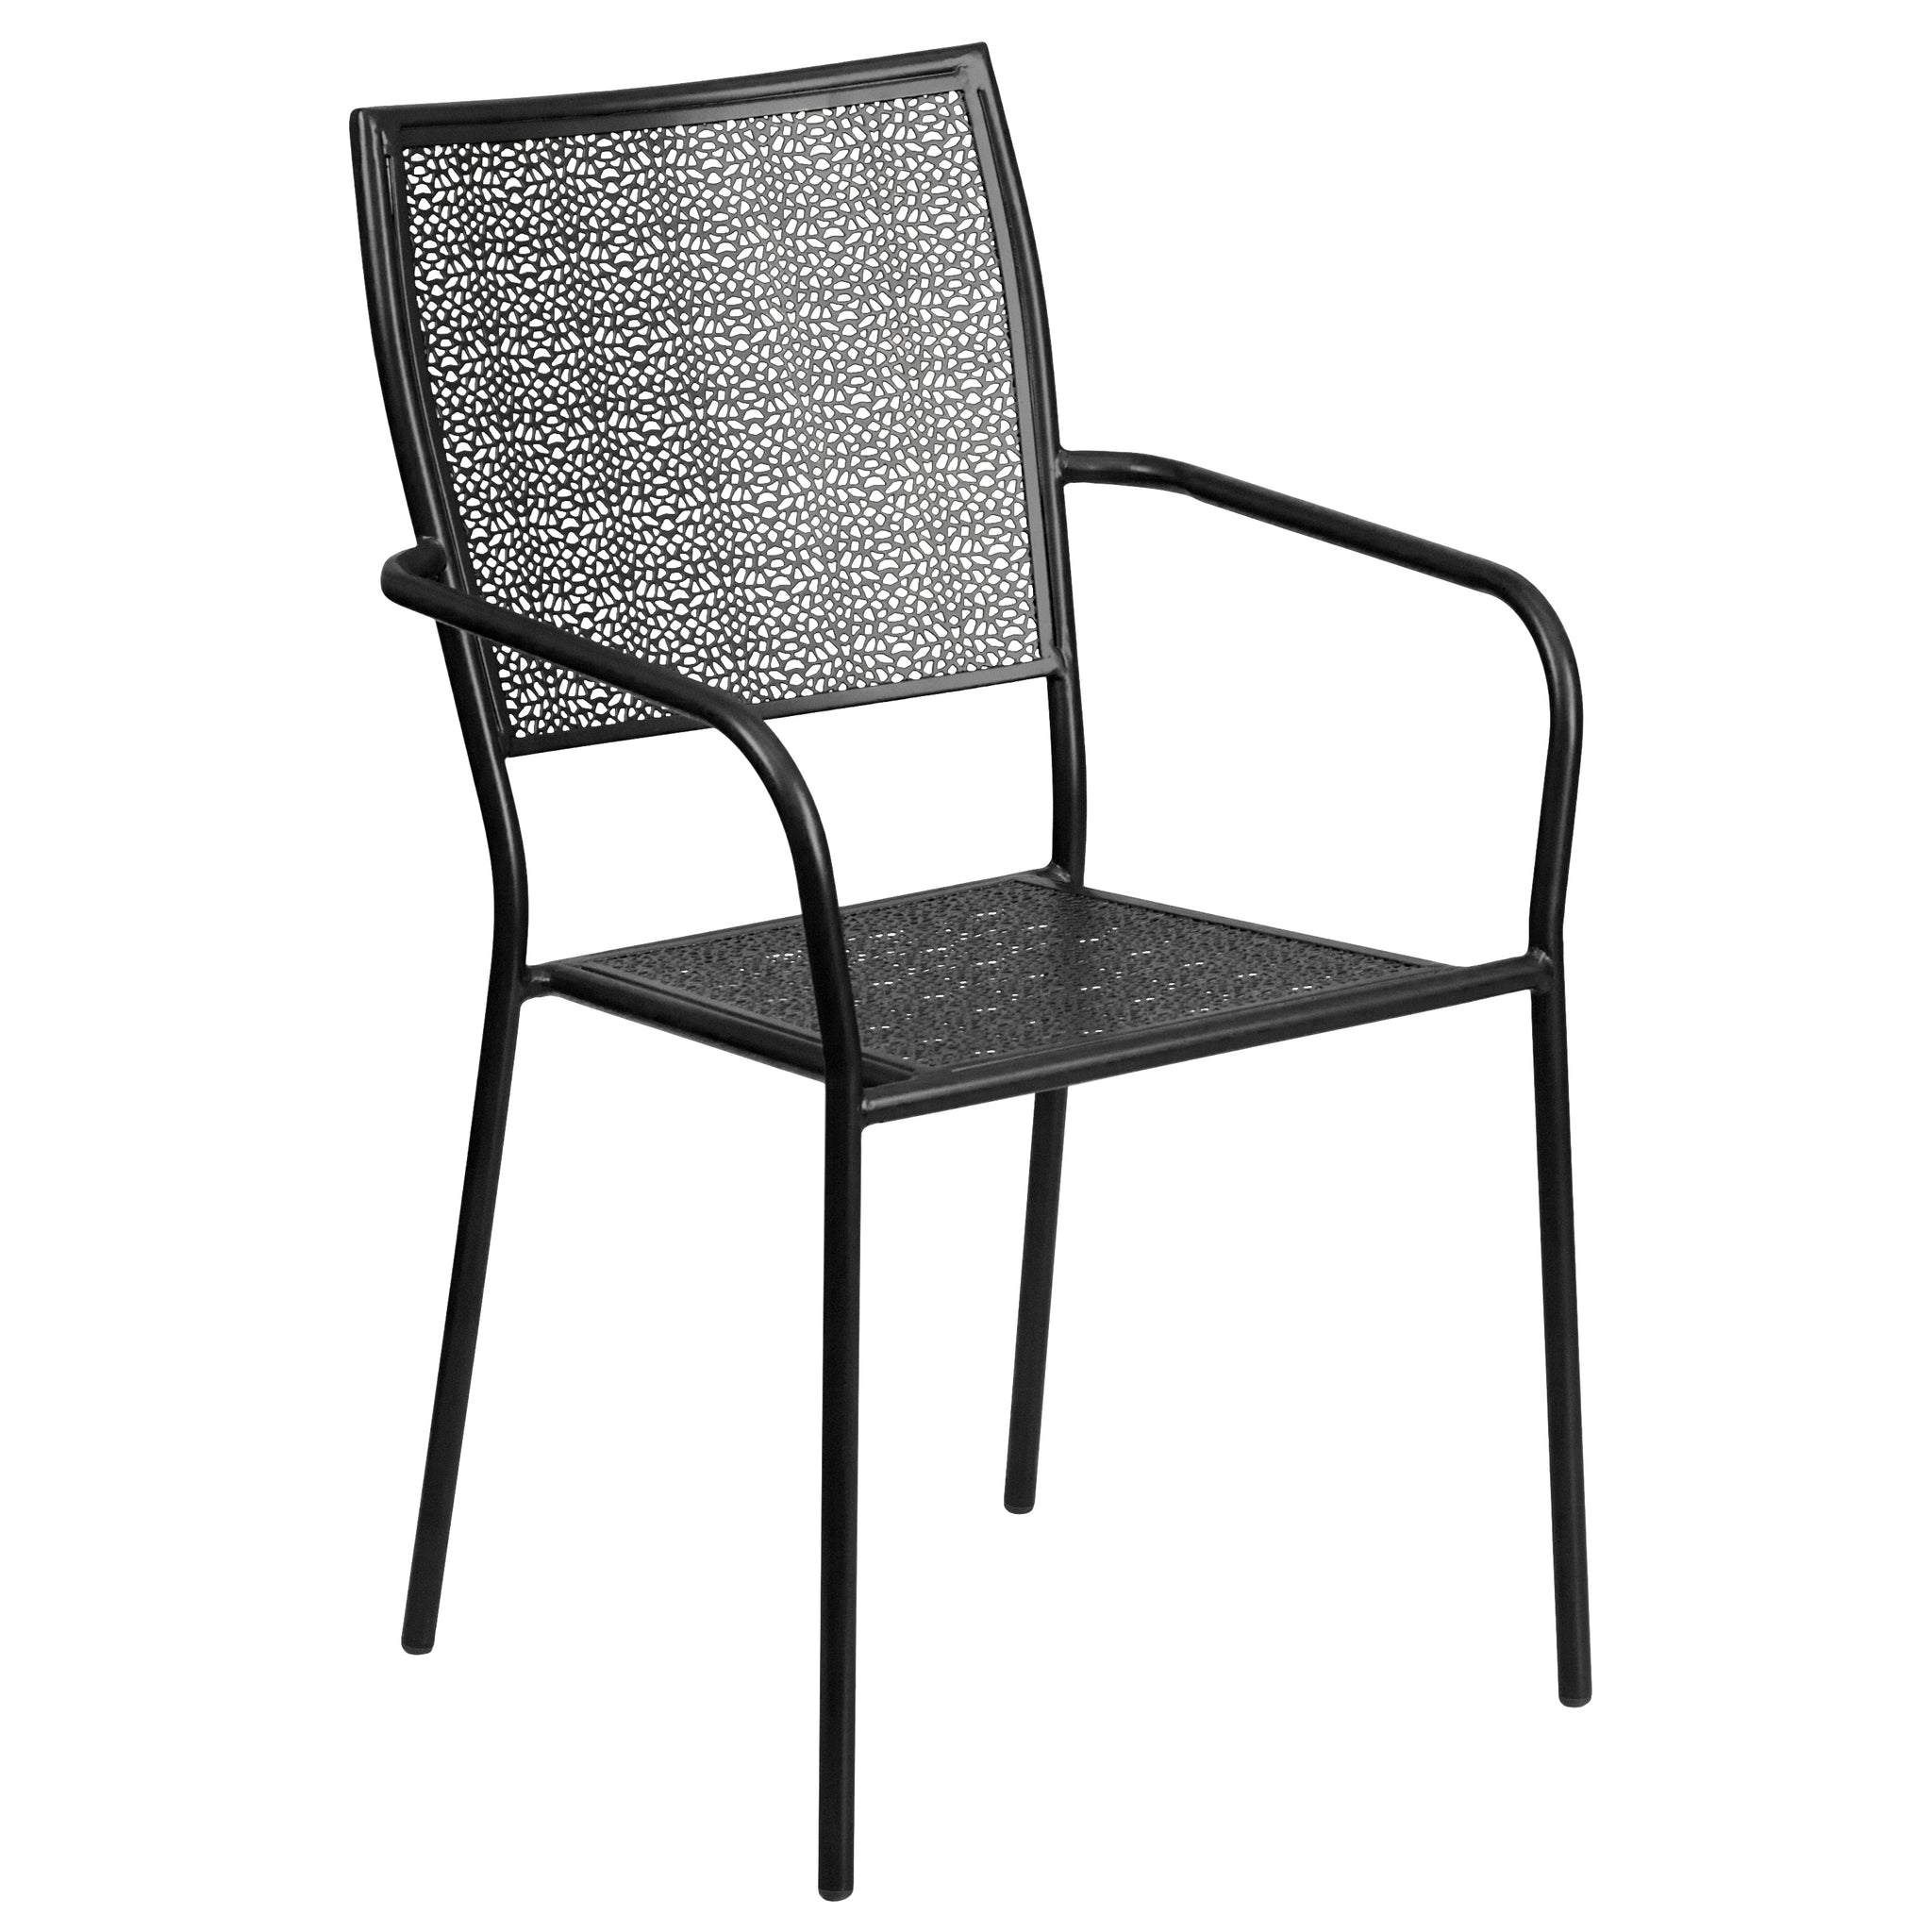 Indoor-Outdoor Steel Patio Arm Chair with Square Back: Coral